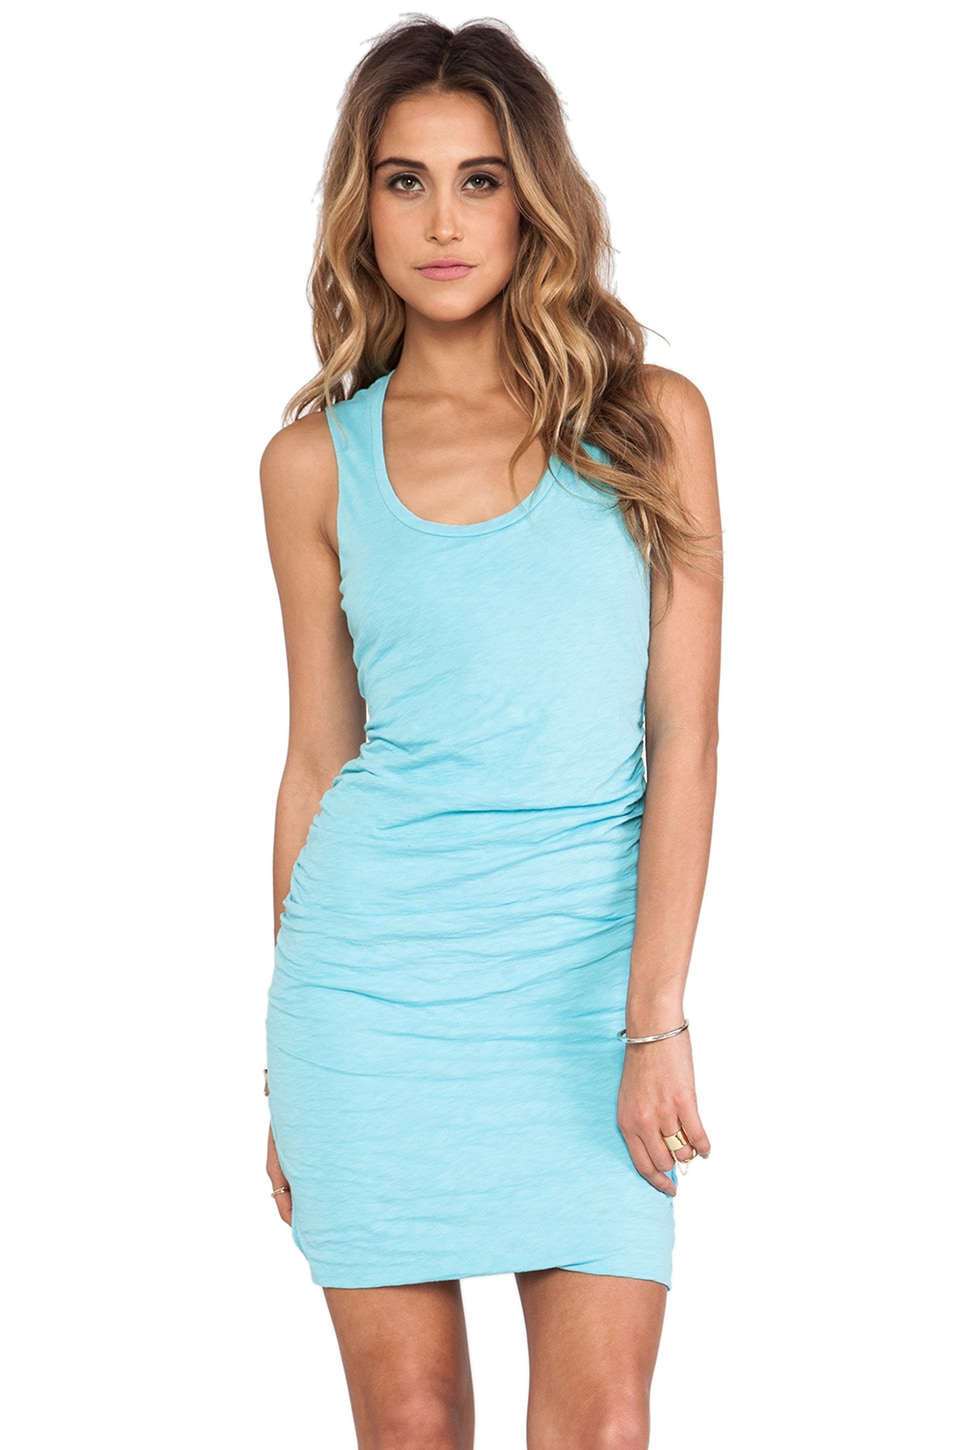 Velvet by Graham & Spencer Danette Cotton Slub Dress in Aqua